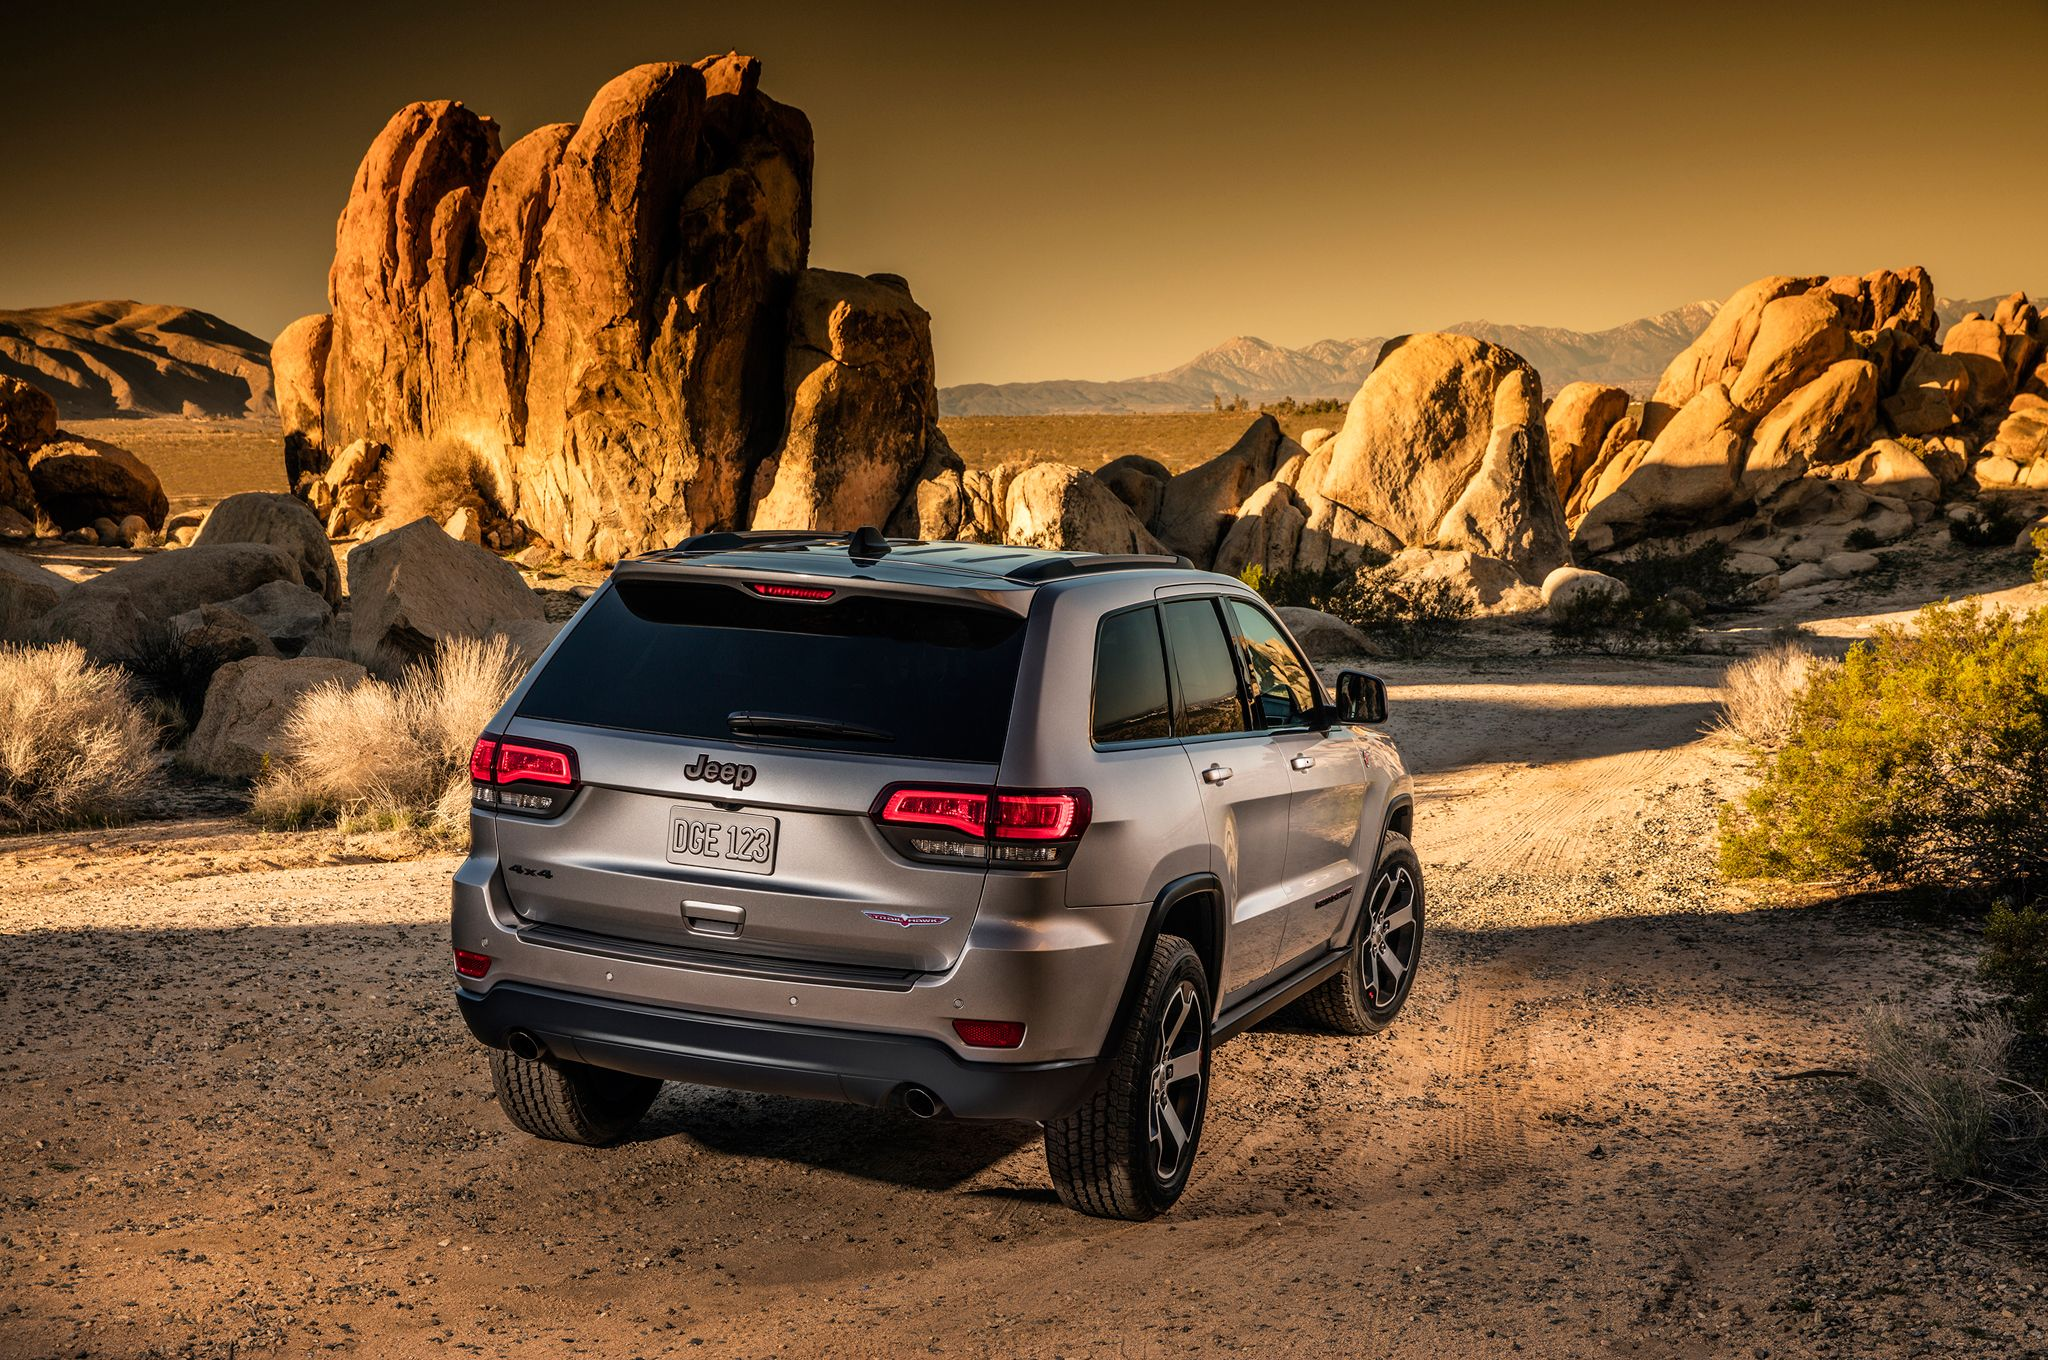 Jeep grand cherokee trailhawk need for speed pinterest jeep grand cherokee cherokee and grand cherokee trailhawk